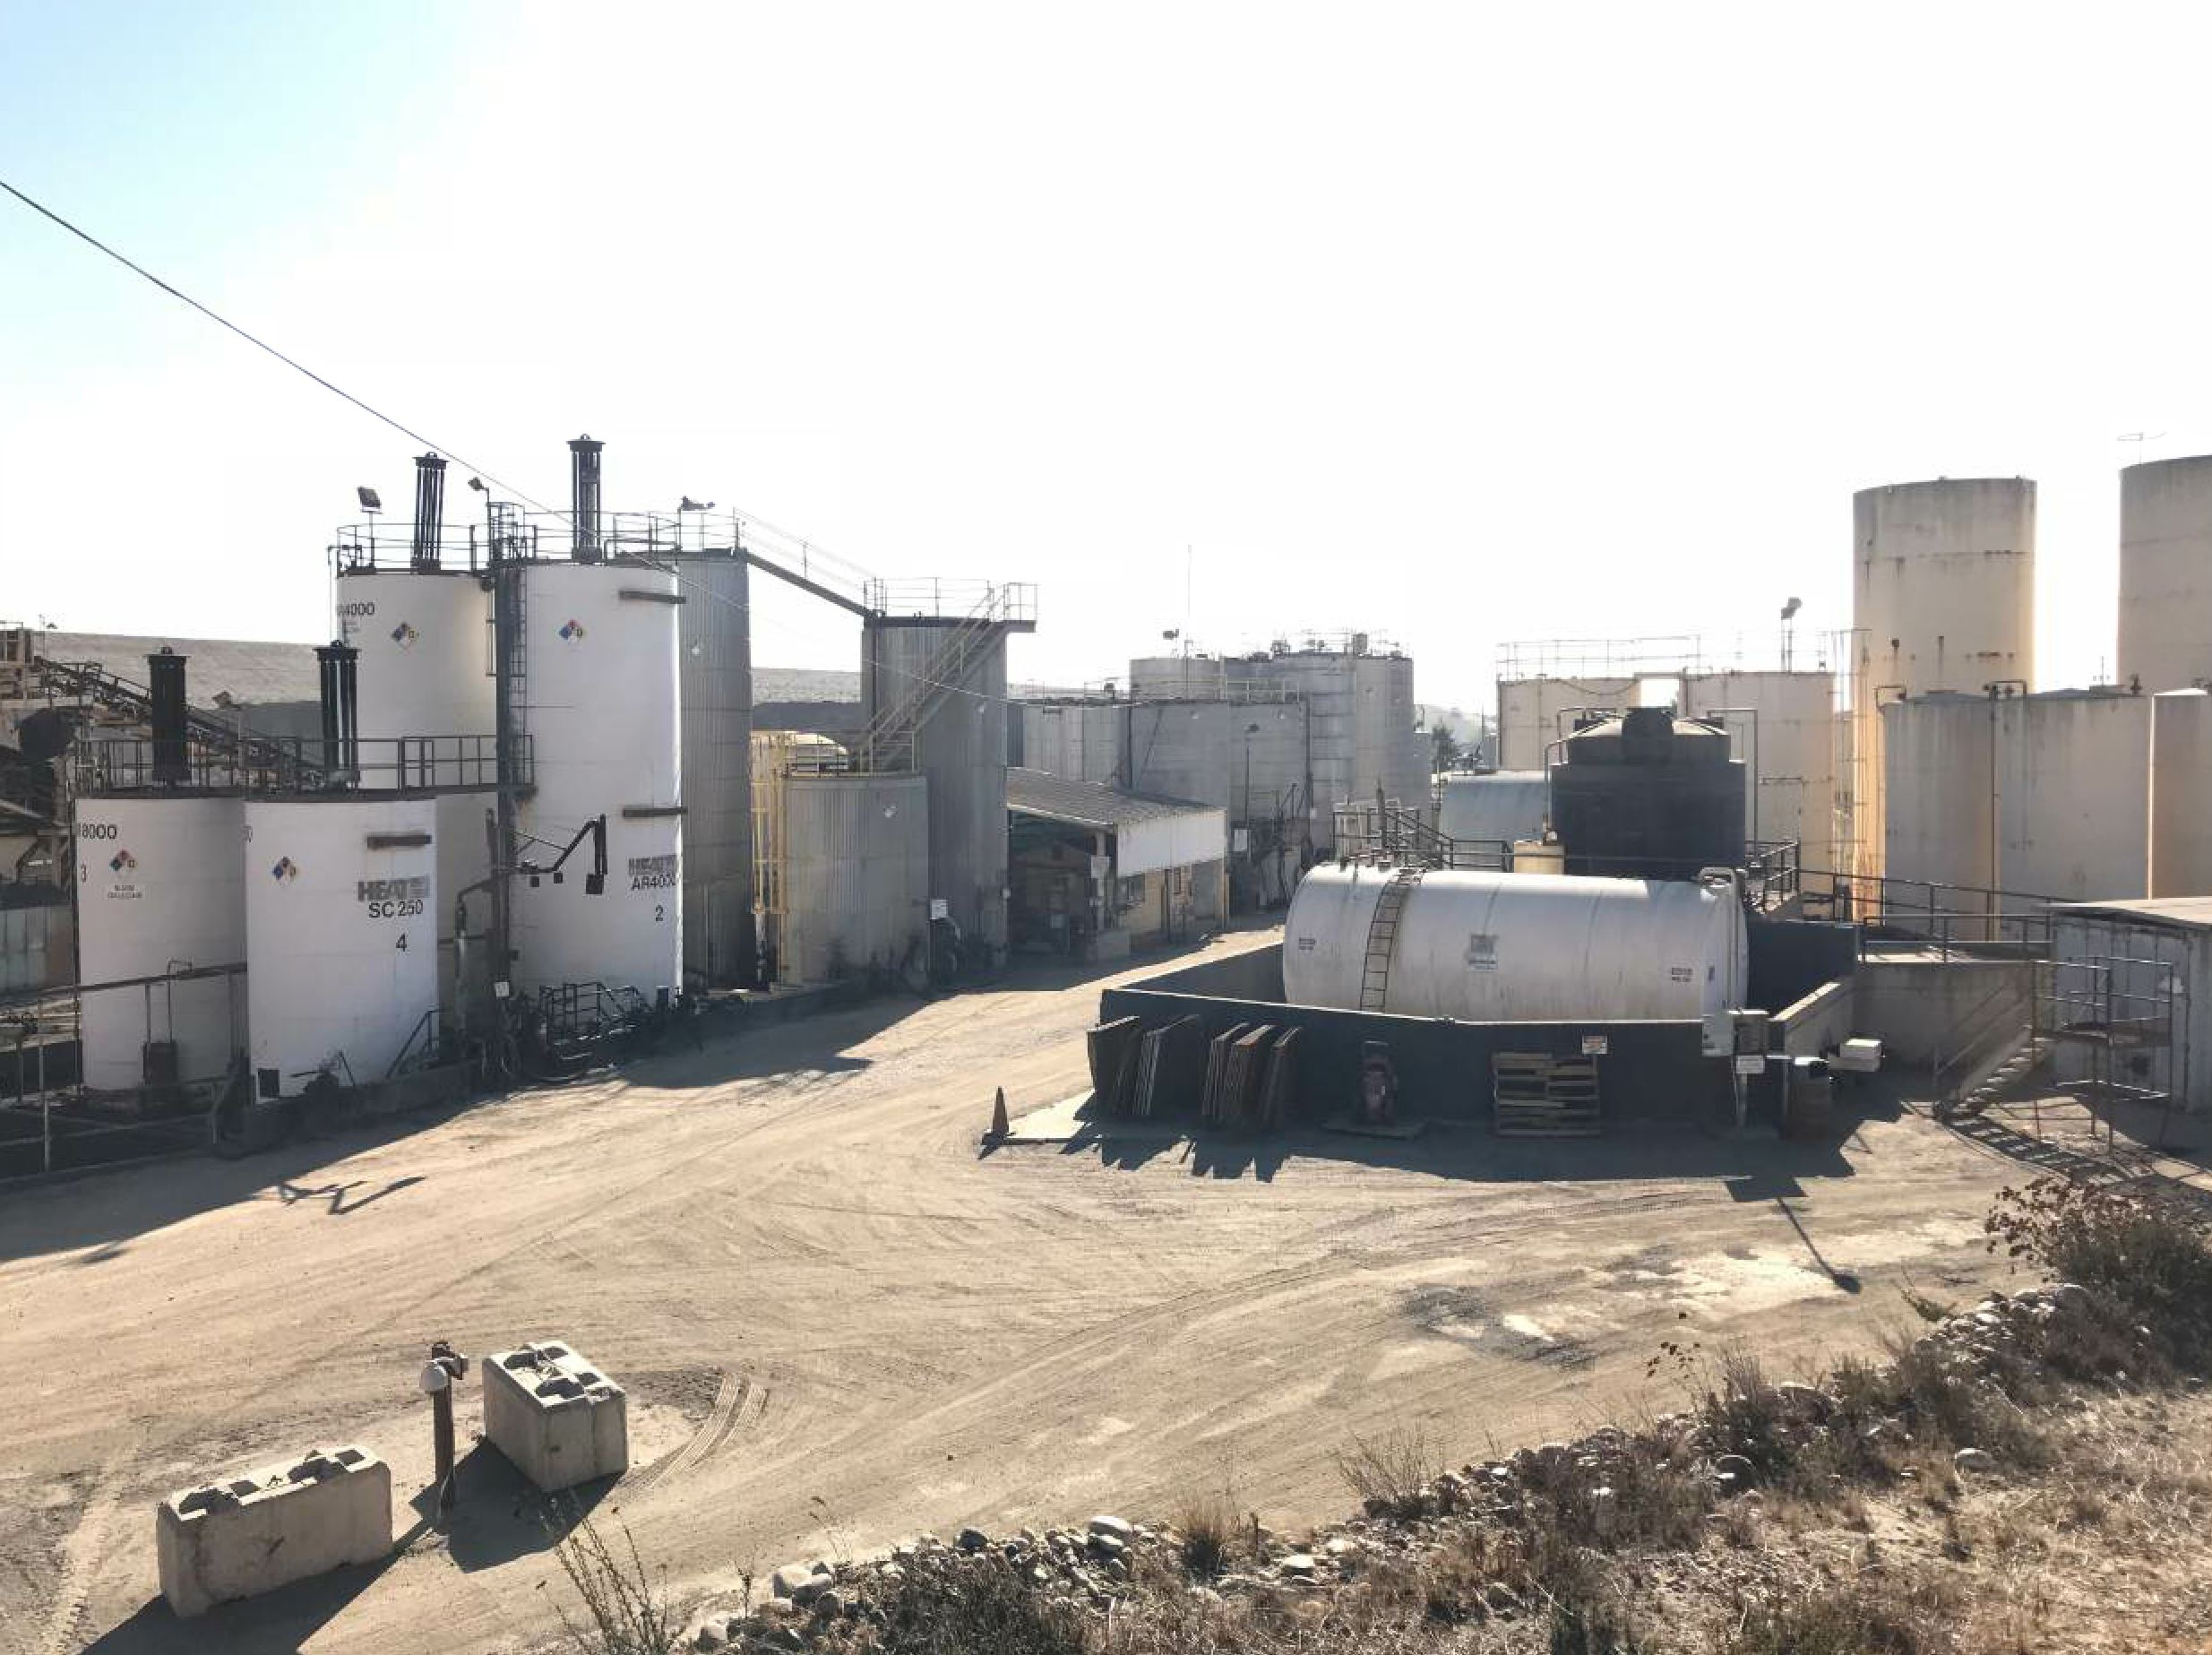 CCA also produces emulsion and sealcoat materials. This is CCA's emulsion plant.